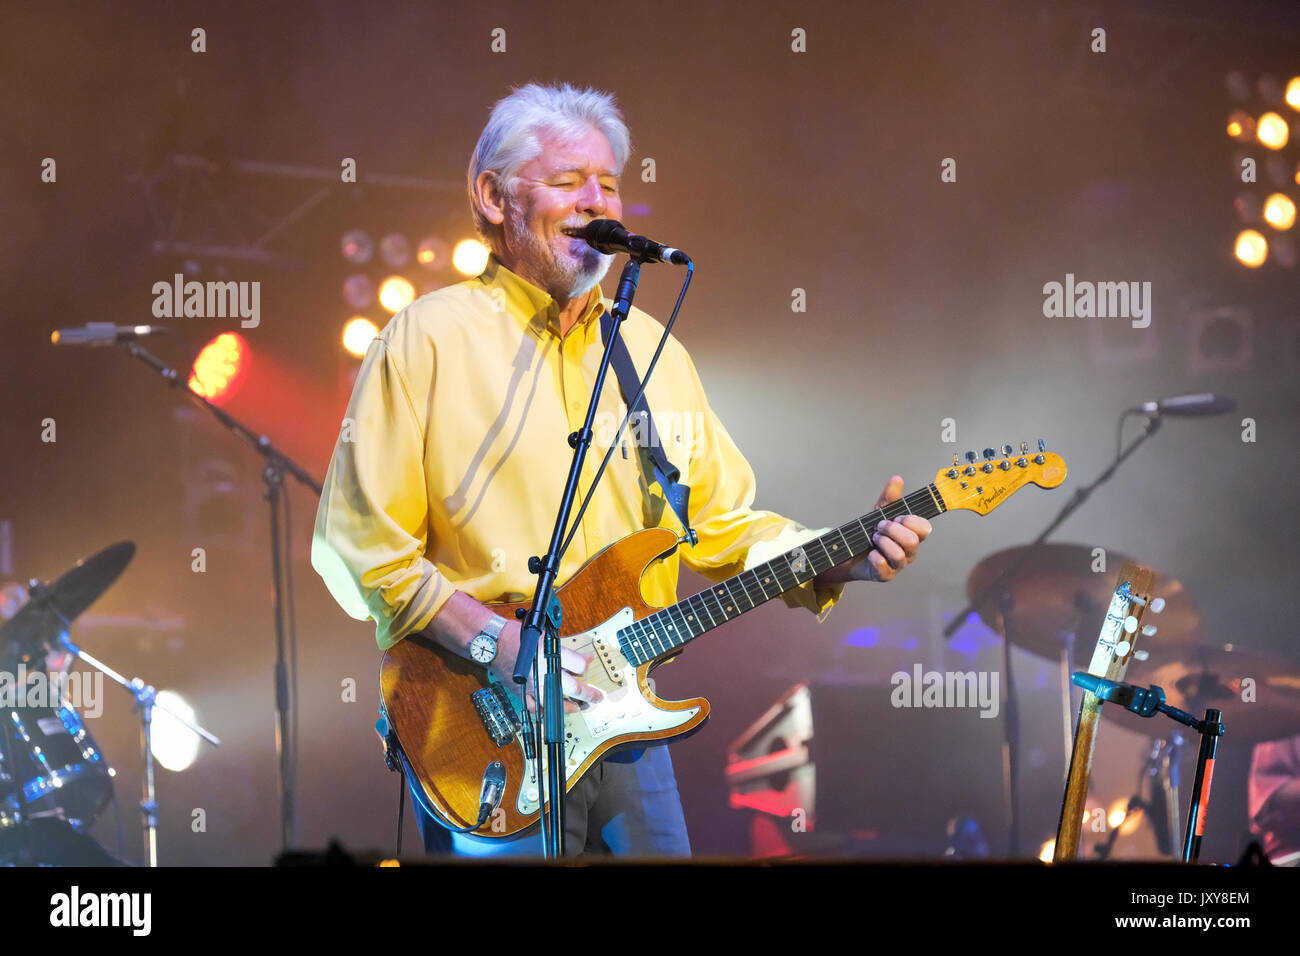 Simon Nicol of Fairport Convention performing at Fairport's Cropredy Convention, Banbury, Oxfordshire, England, August 12, 2017 - Stock Image